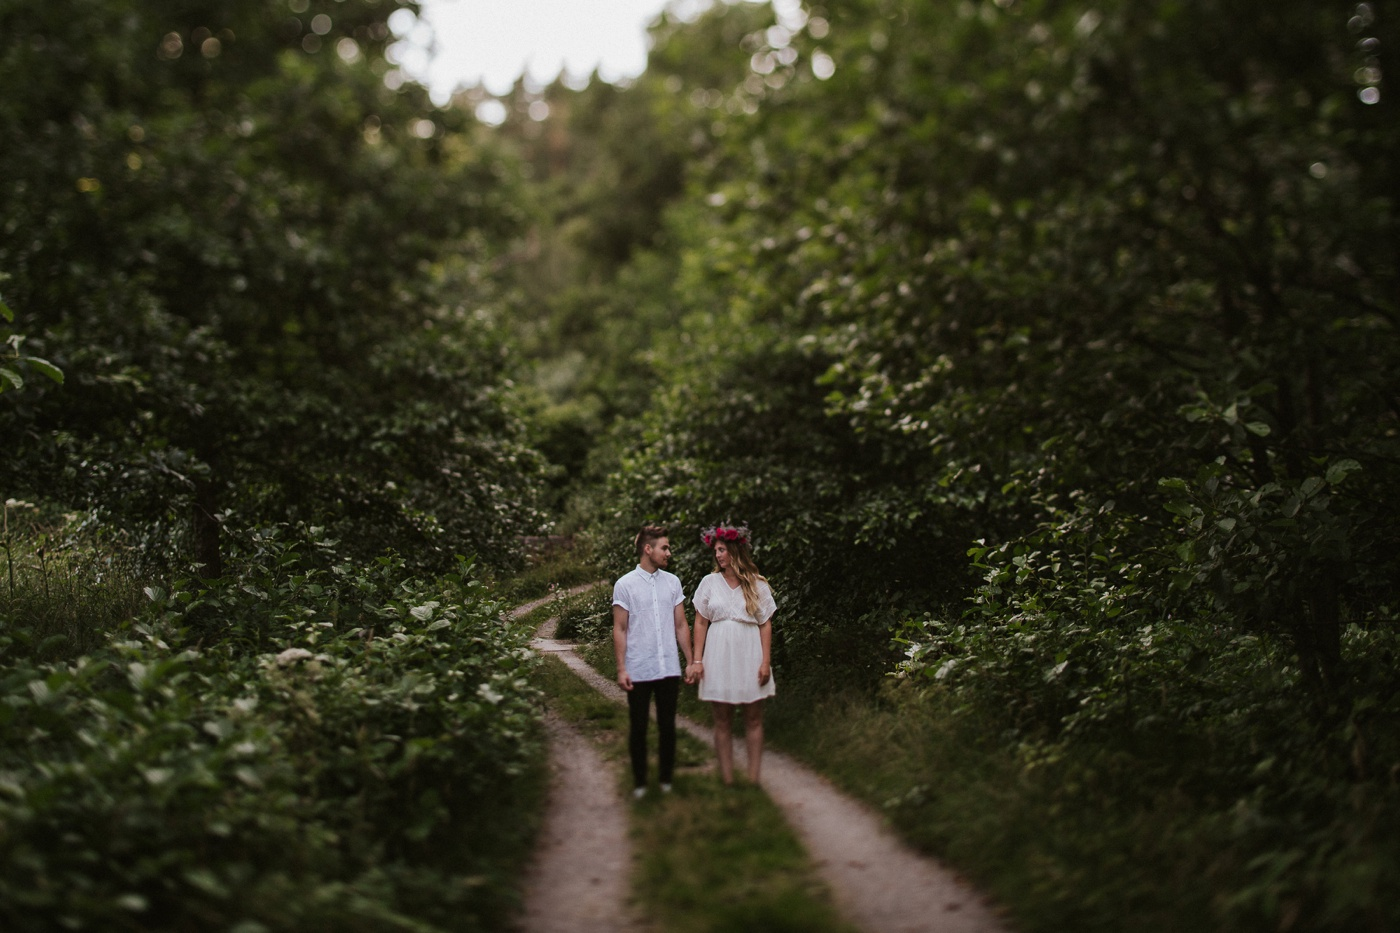 natalie-wictor_swedish-relaxed-candid-quirky-fun-engagement-session_4